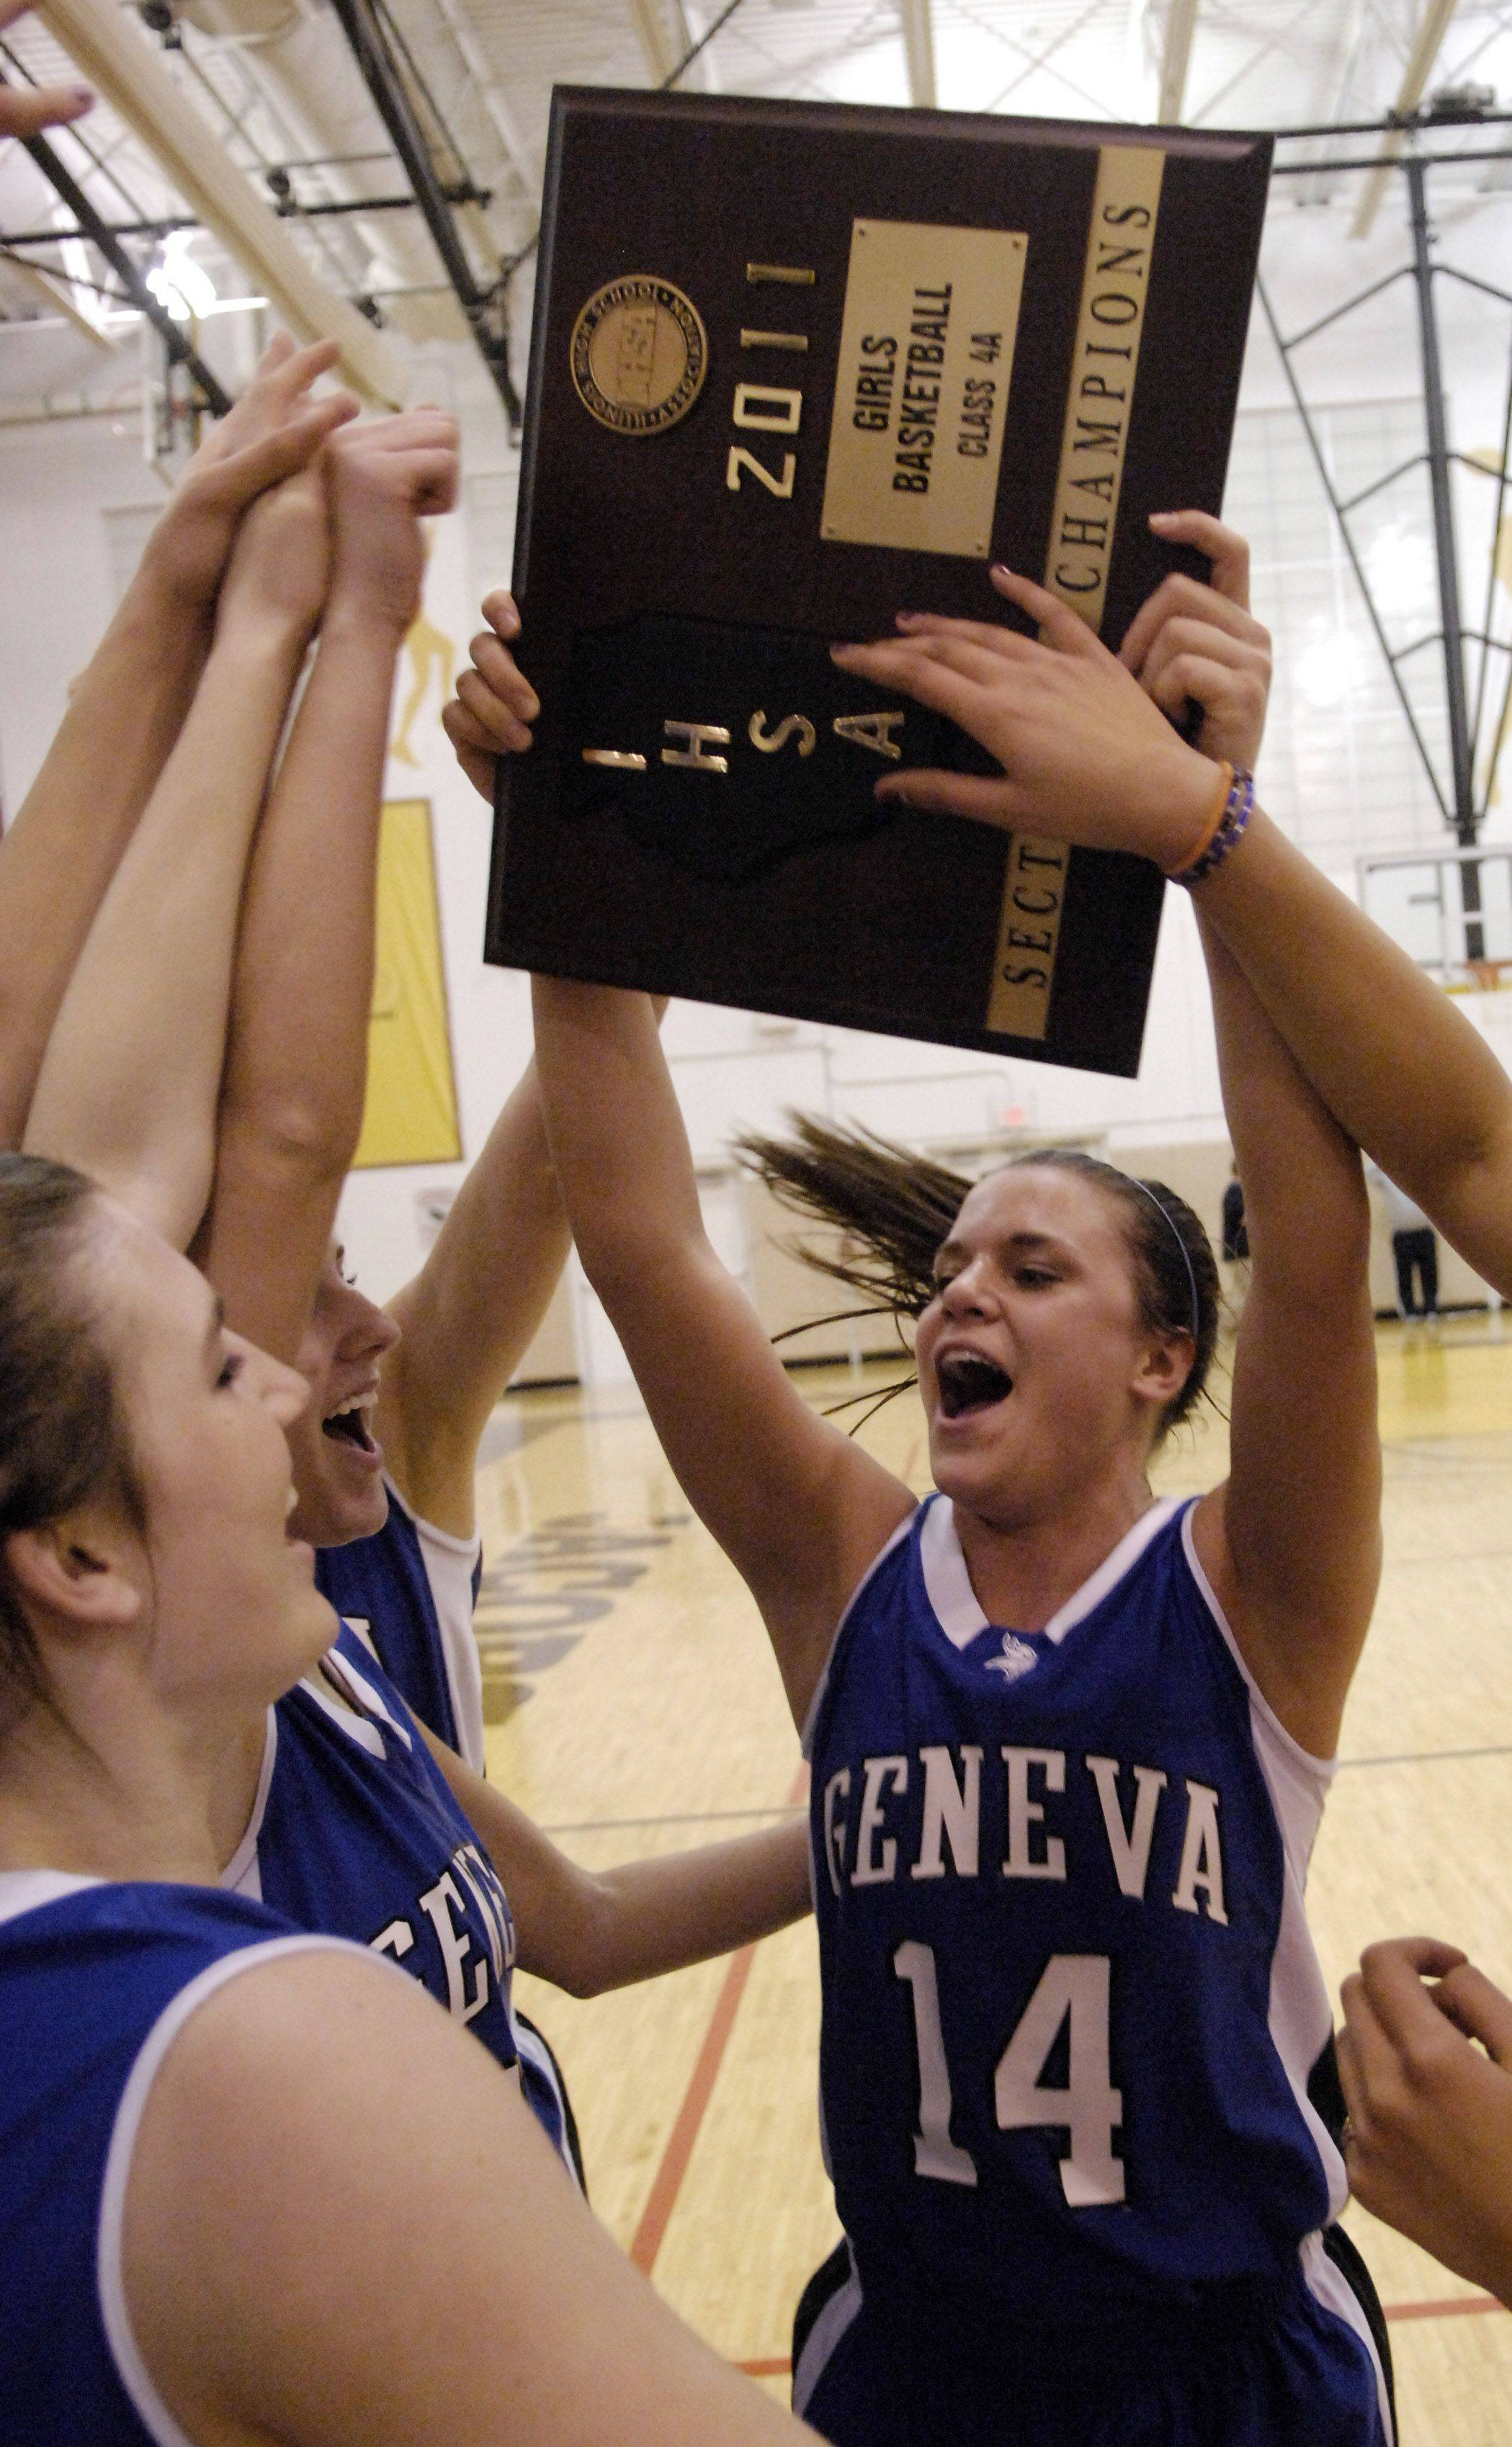 Geneva's Kat Yelle hoists up the sectional championship plaque following their win over Cary-Grove Thursday at Jacobs High School in Algonquin.